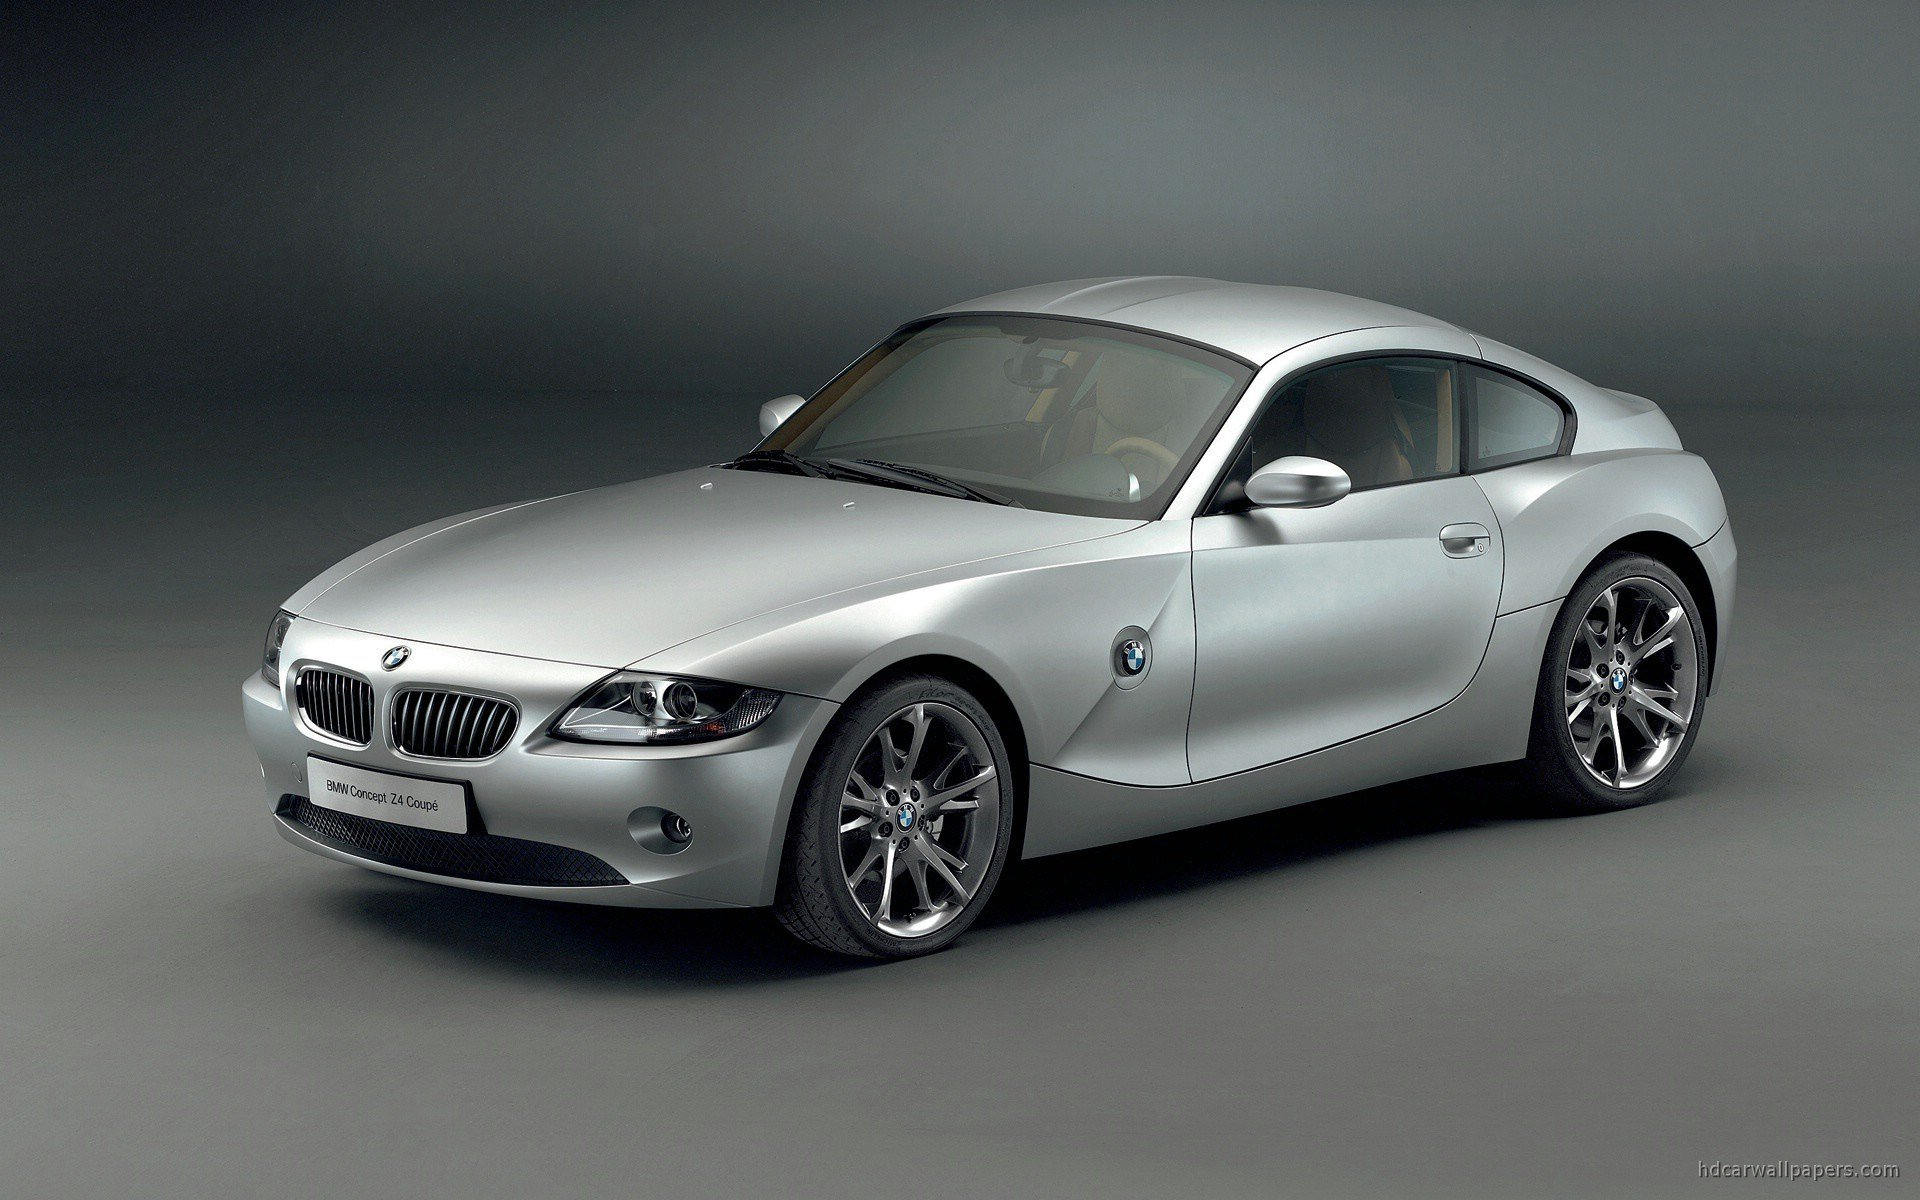 Latest Bmw Z4 Coupe 4 Wallpaper Hd Car Wallpapers Id 276 Free Download Original 1024 x 768